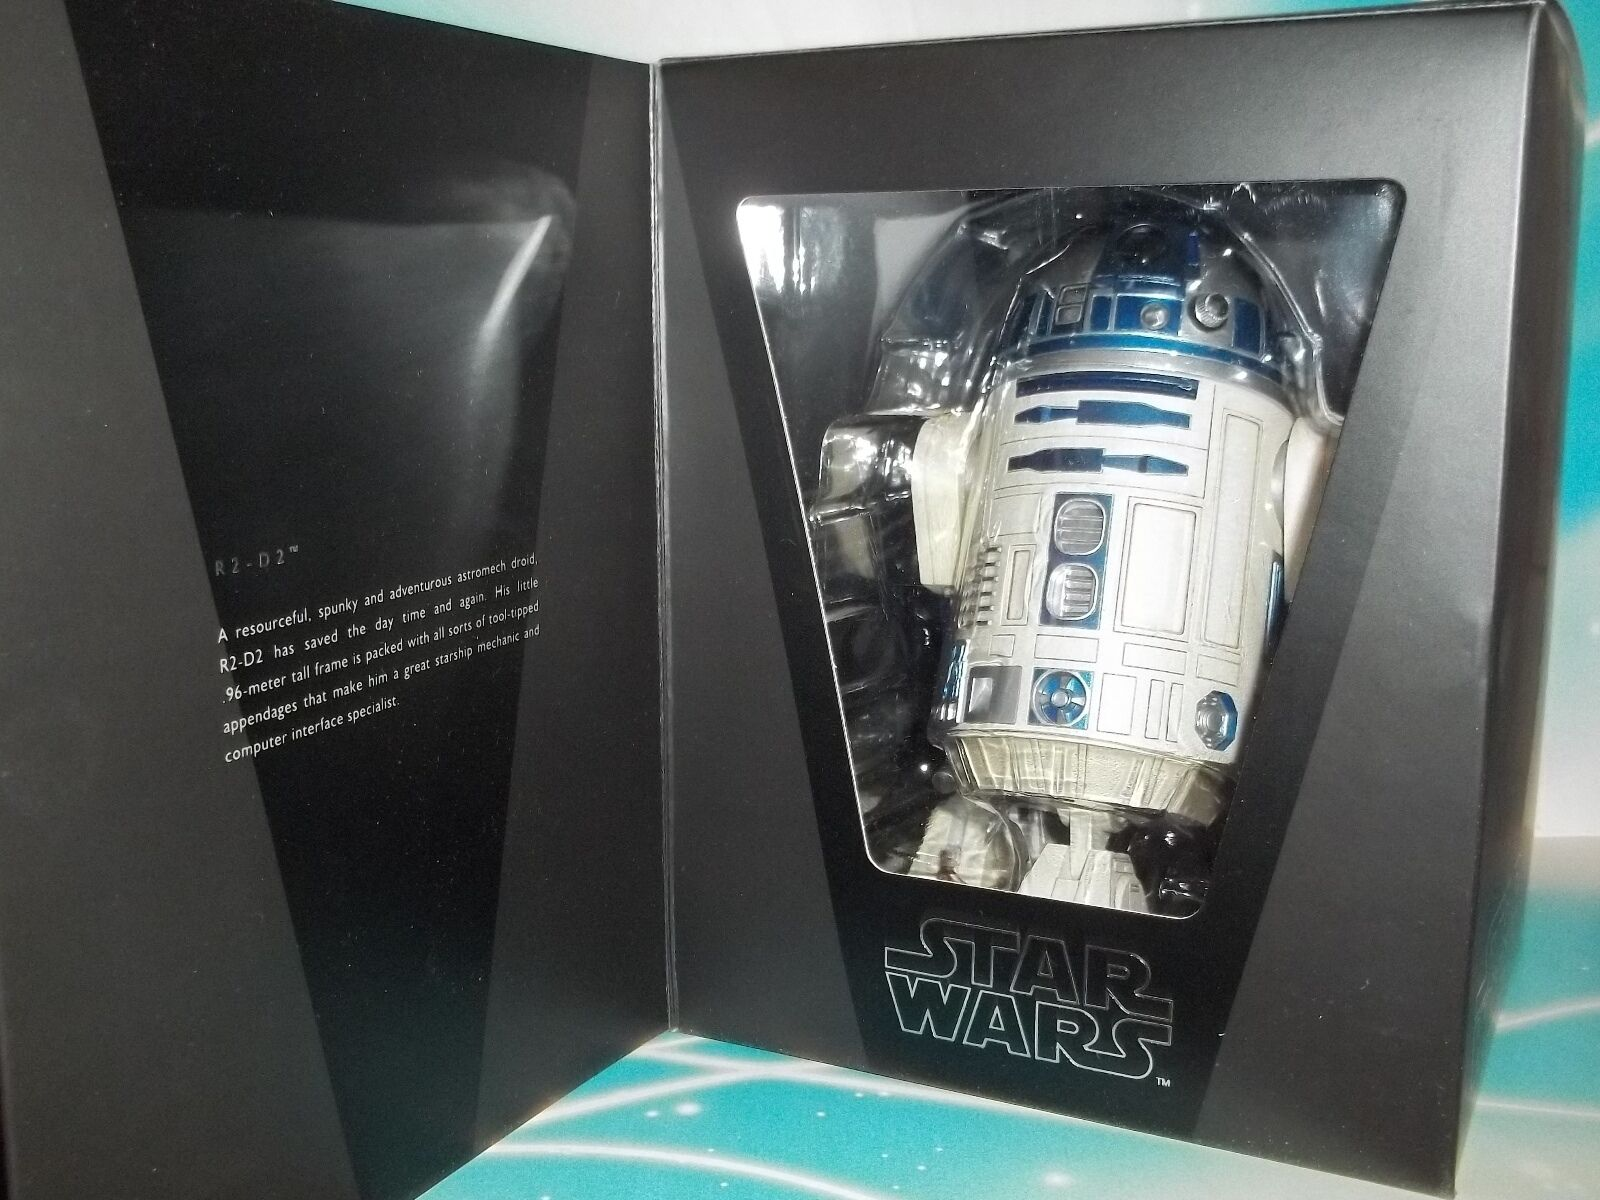 Star wars medicom japanese high detail 12  1/6 scale 2010 r2-d2 figure -in USA